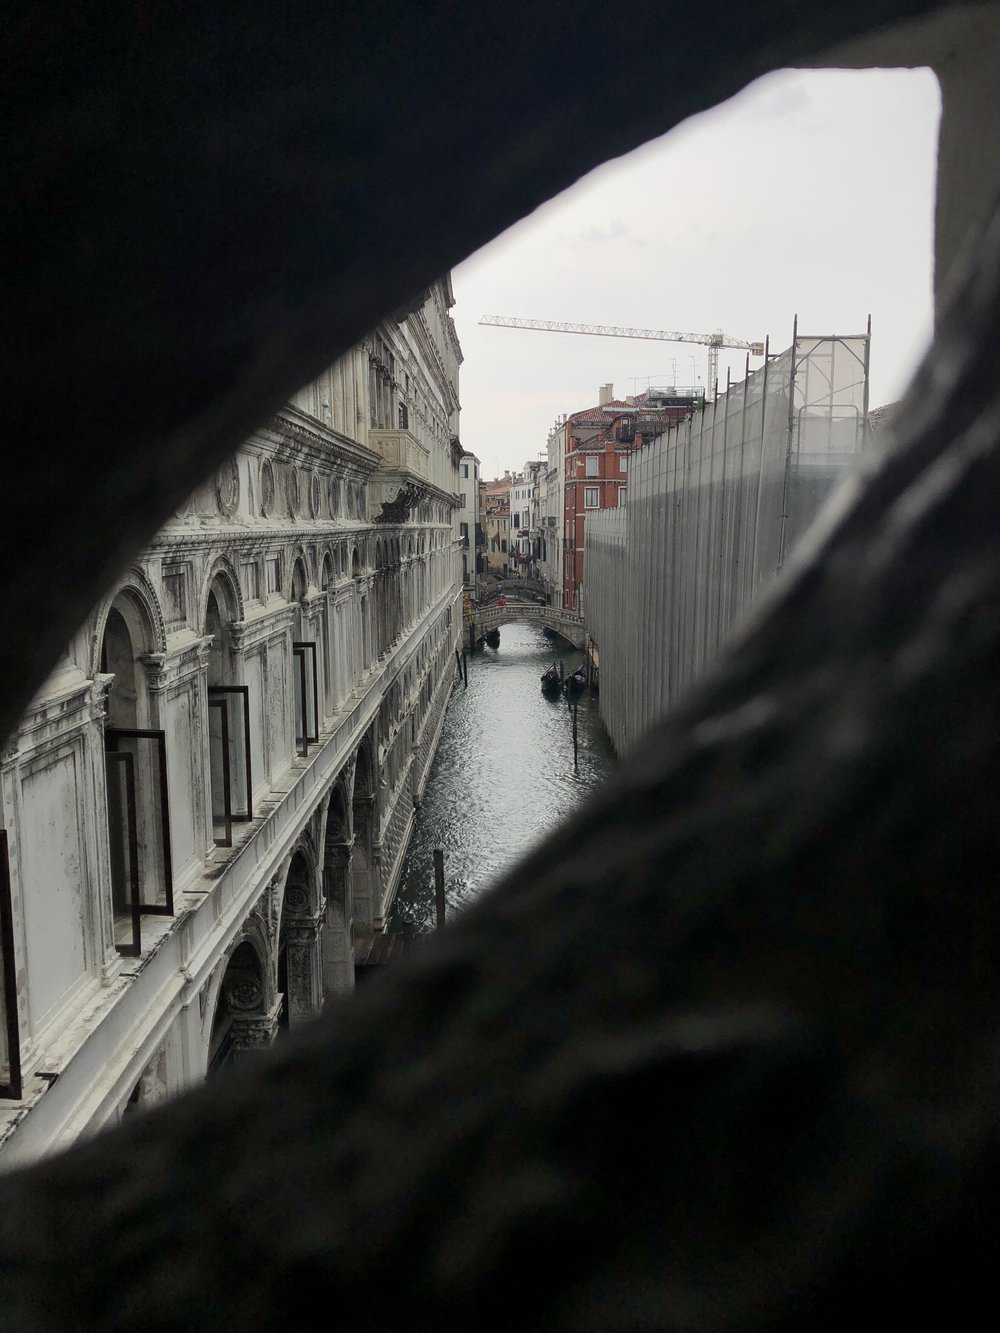 View from the Bridge of Sighs, built in 1614 to link the Doge's Palace to the structure intended to house the New Prisons.